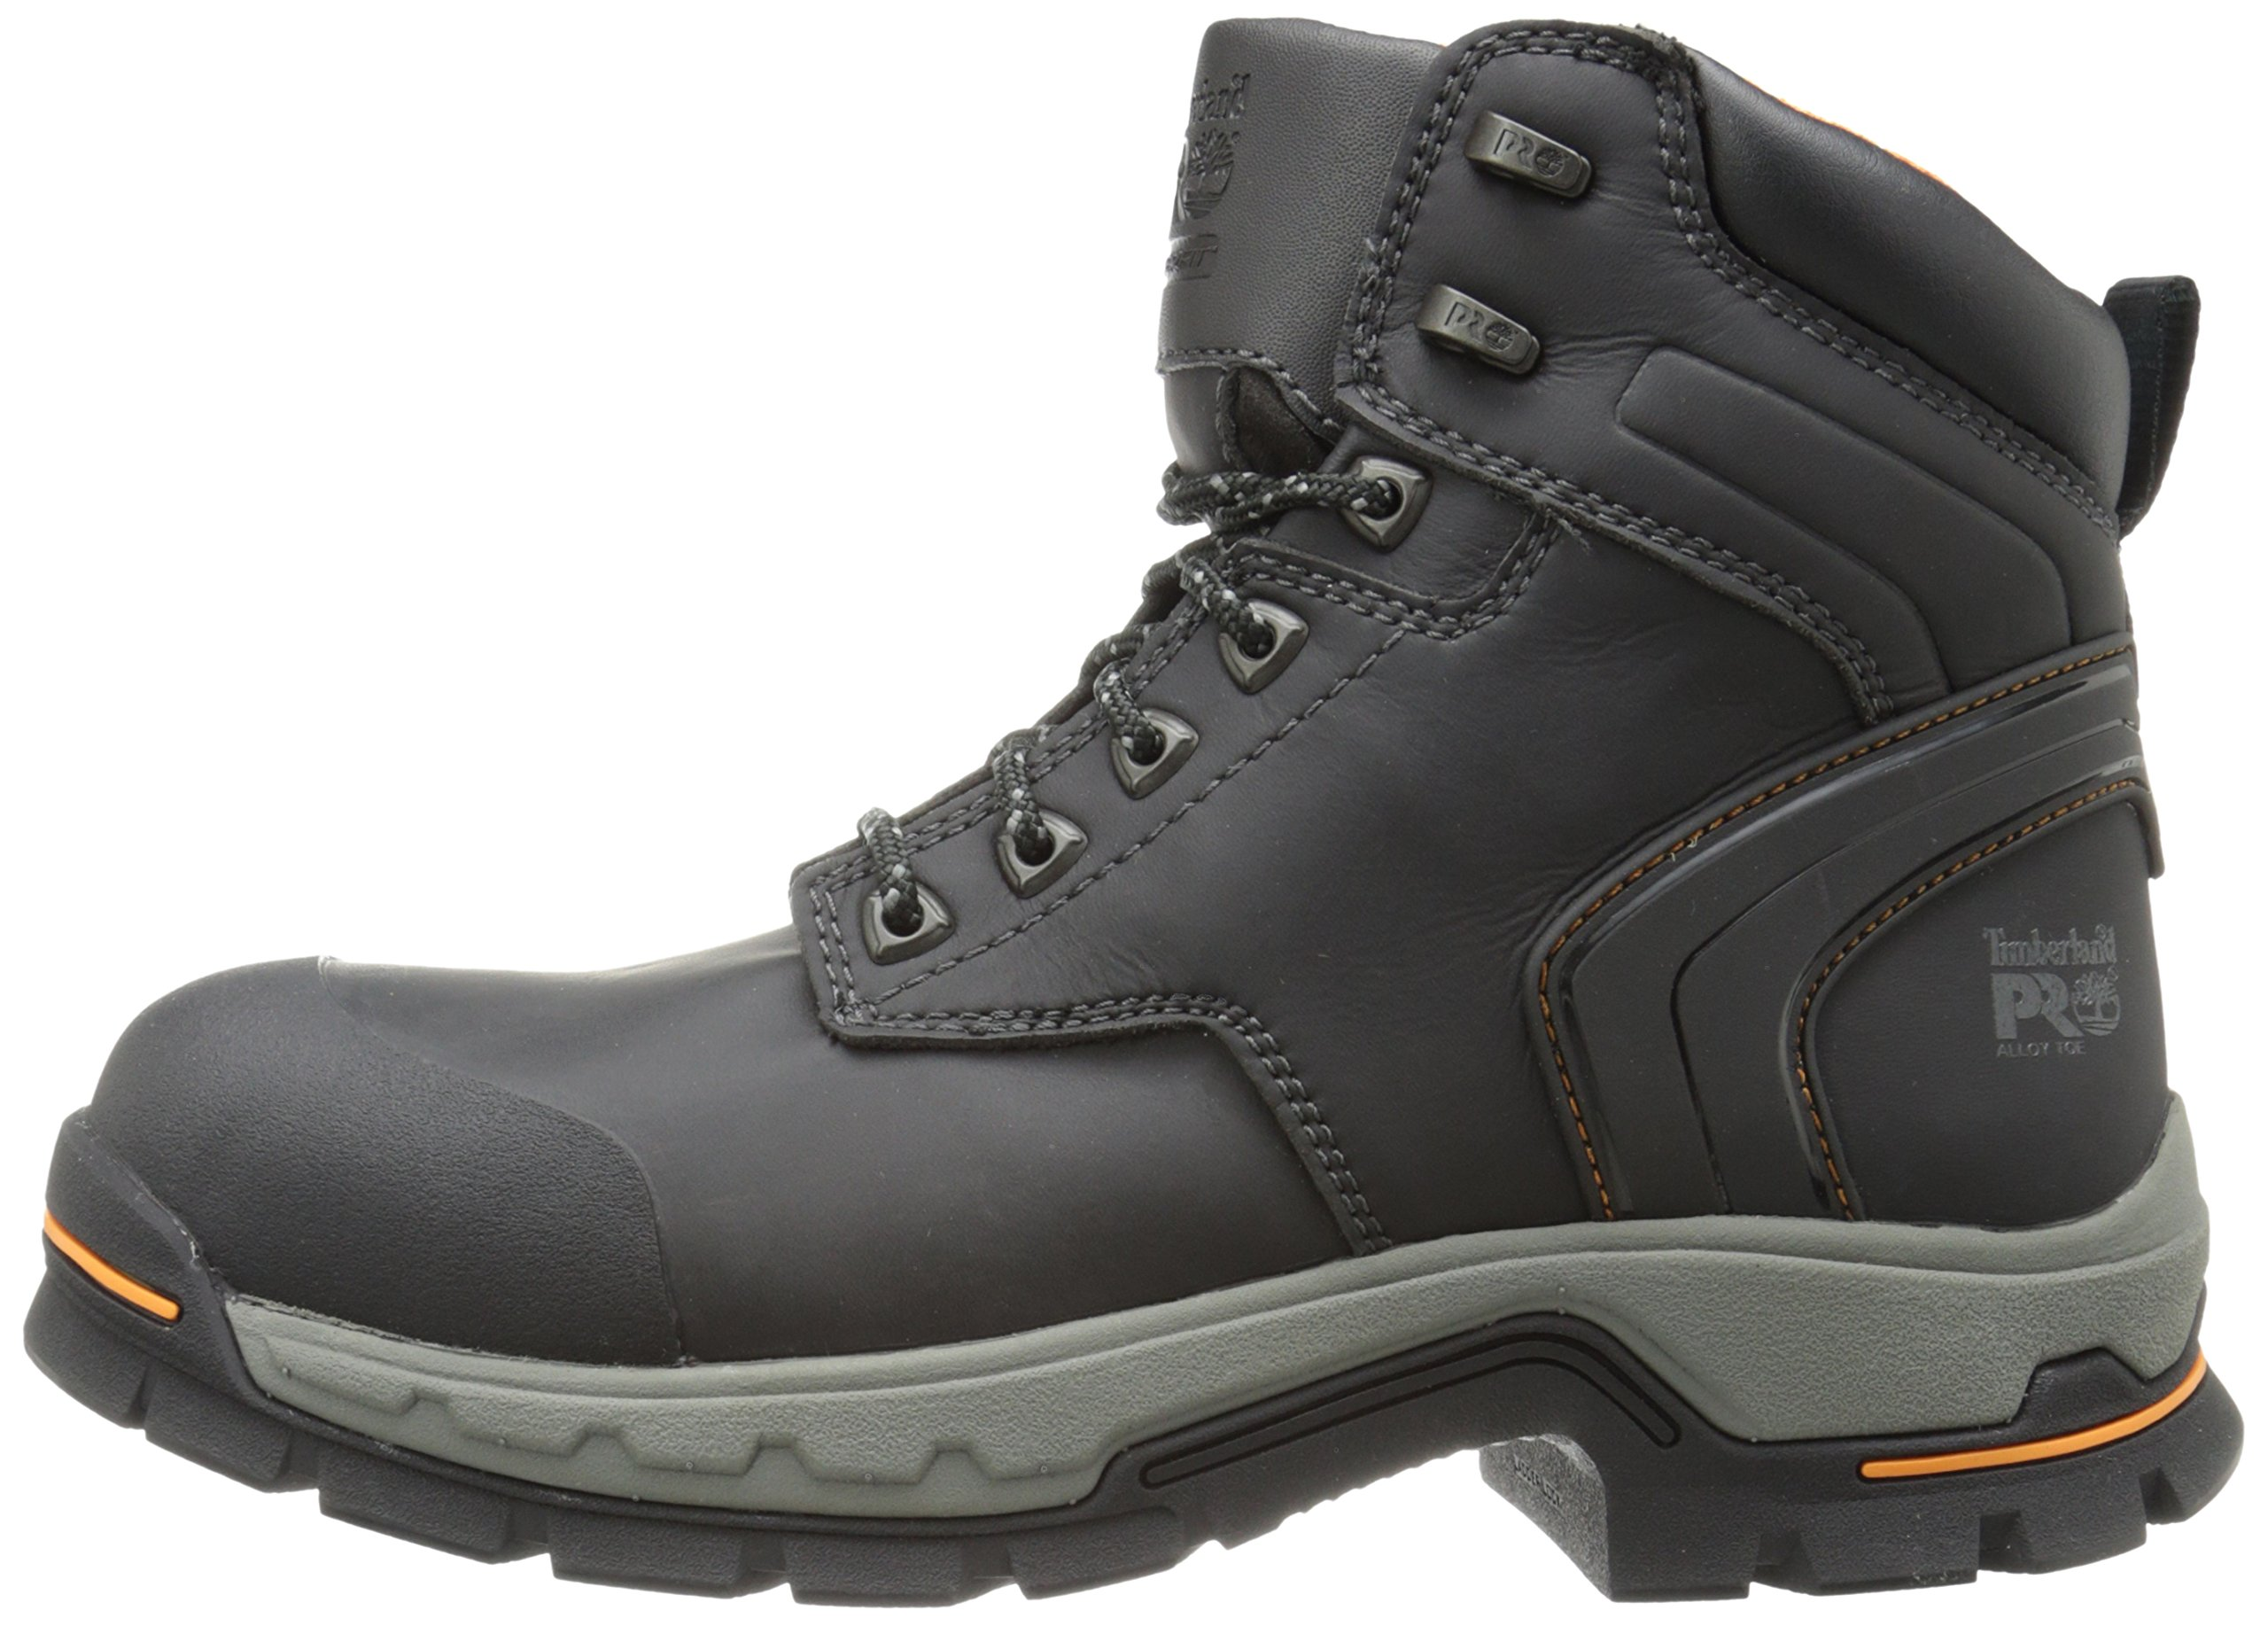 Timberland PRO Men's 6 Inch Stockdale Grip Max Alloy Toe Work and Hunt Boot, Black Microfiber, 5.5 W US by Timberland PRO (Image #5)